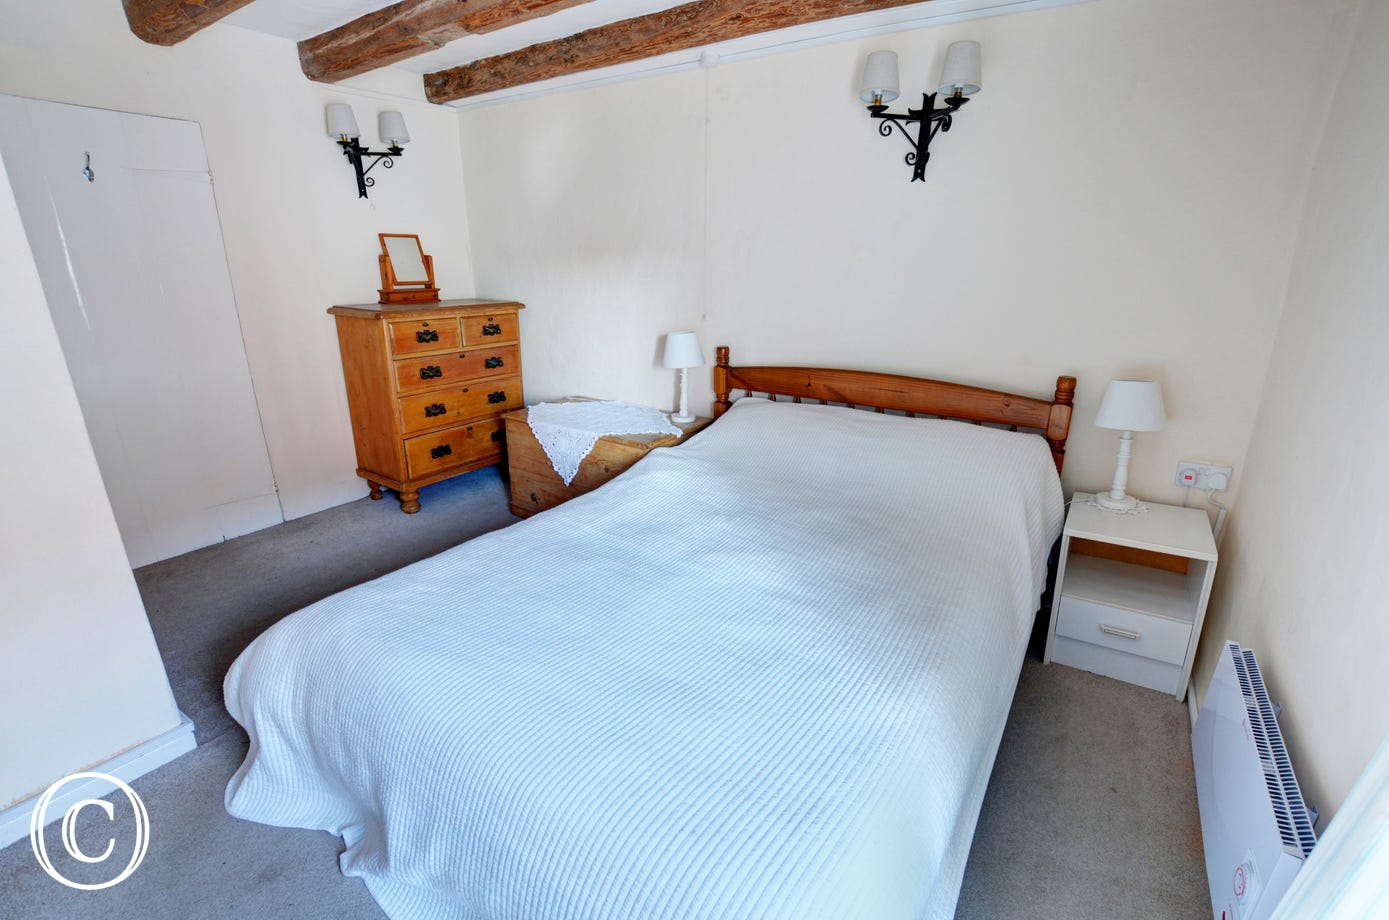 Charming first floor double bedroom with a double bed and exposed beams